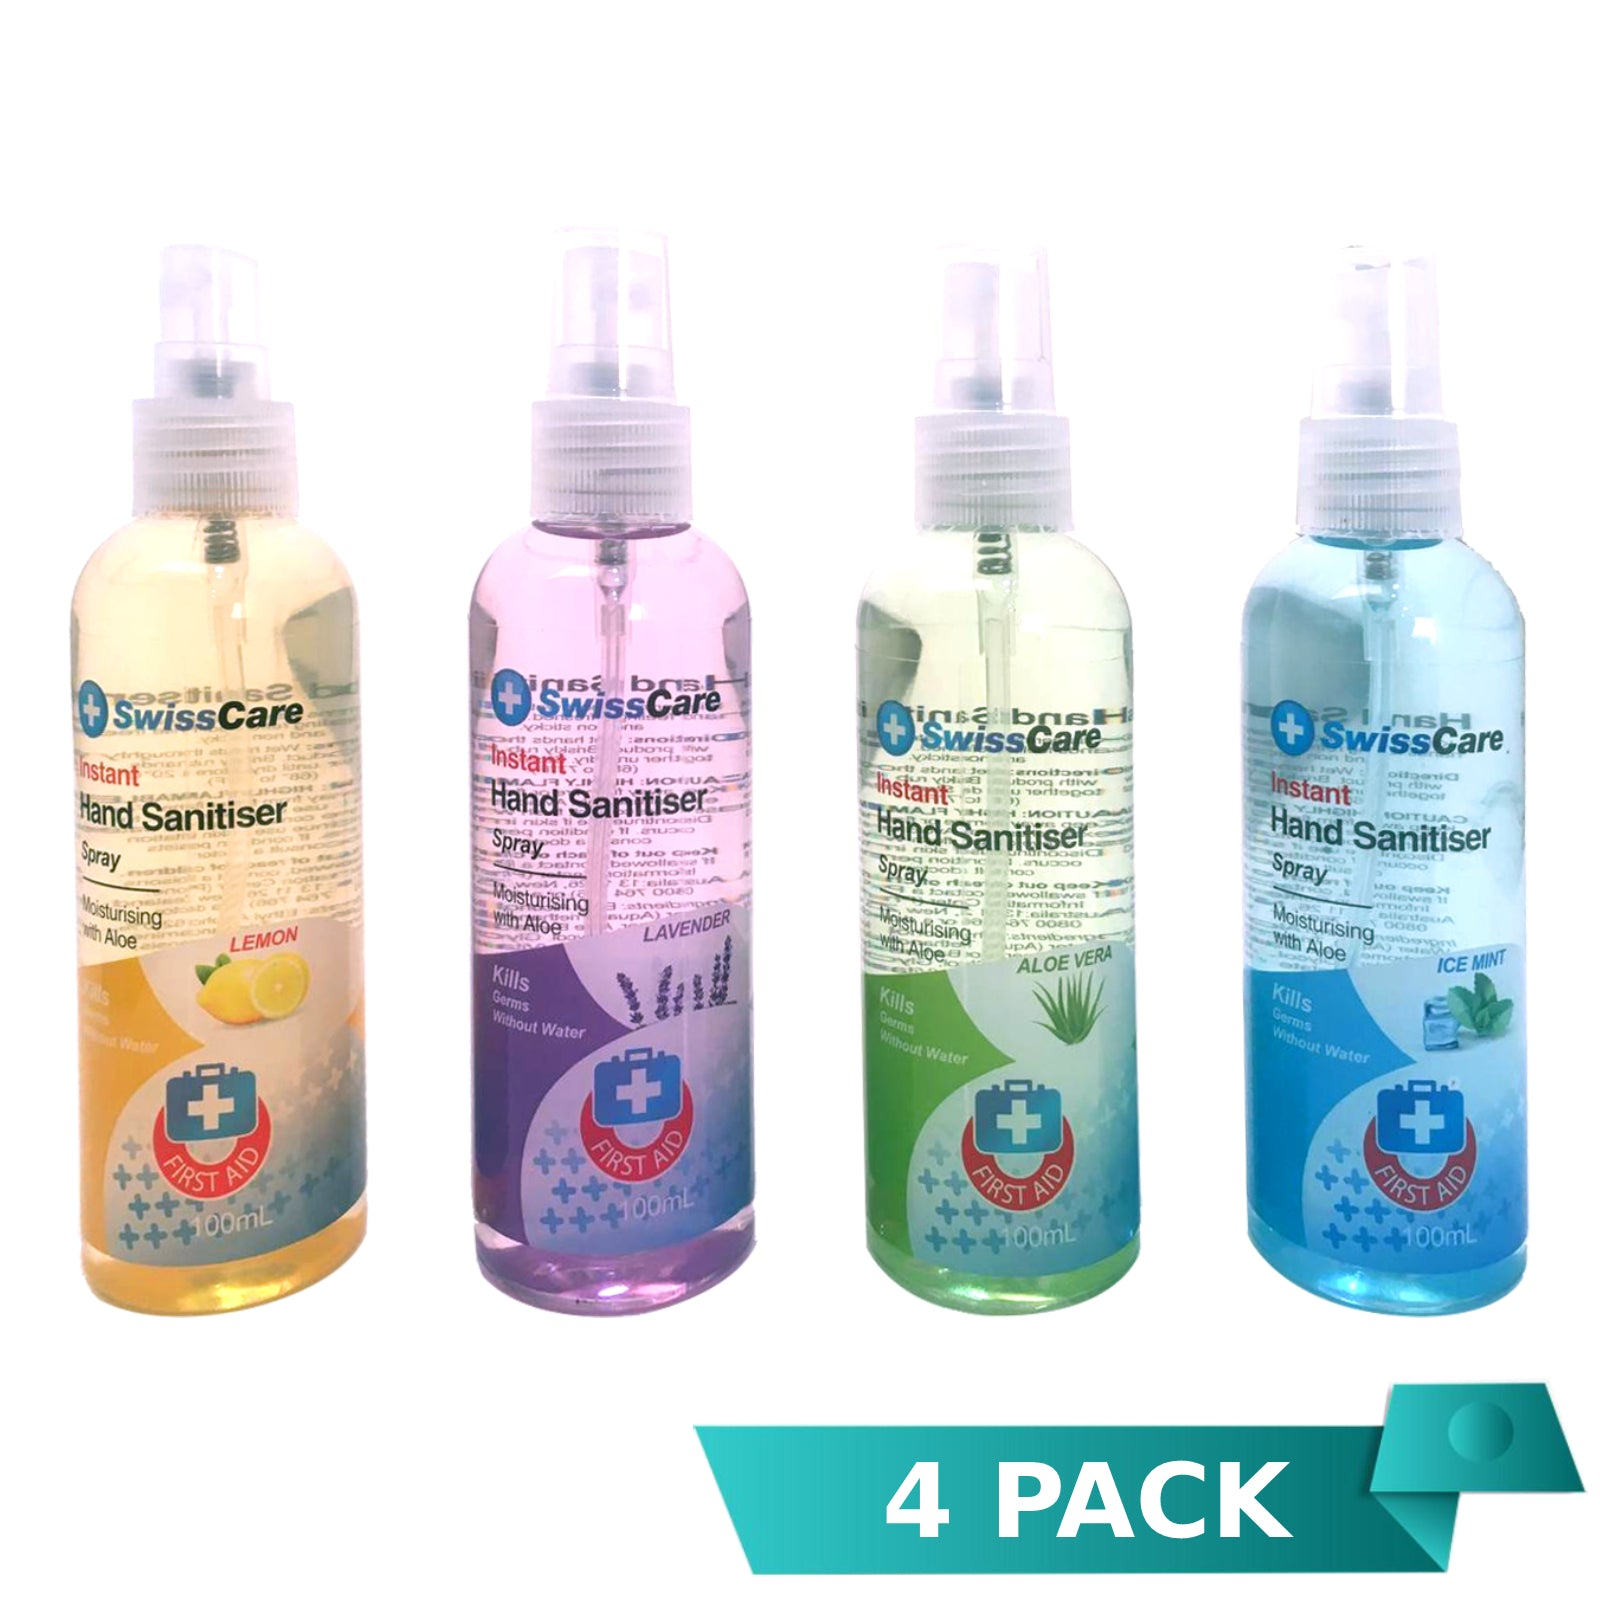 4 x SwissCare Hand Sanitiser Spray Assorted 100mL